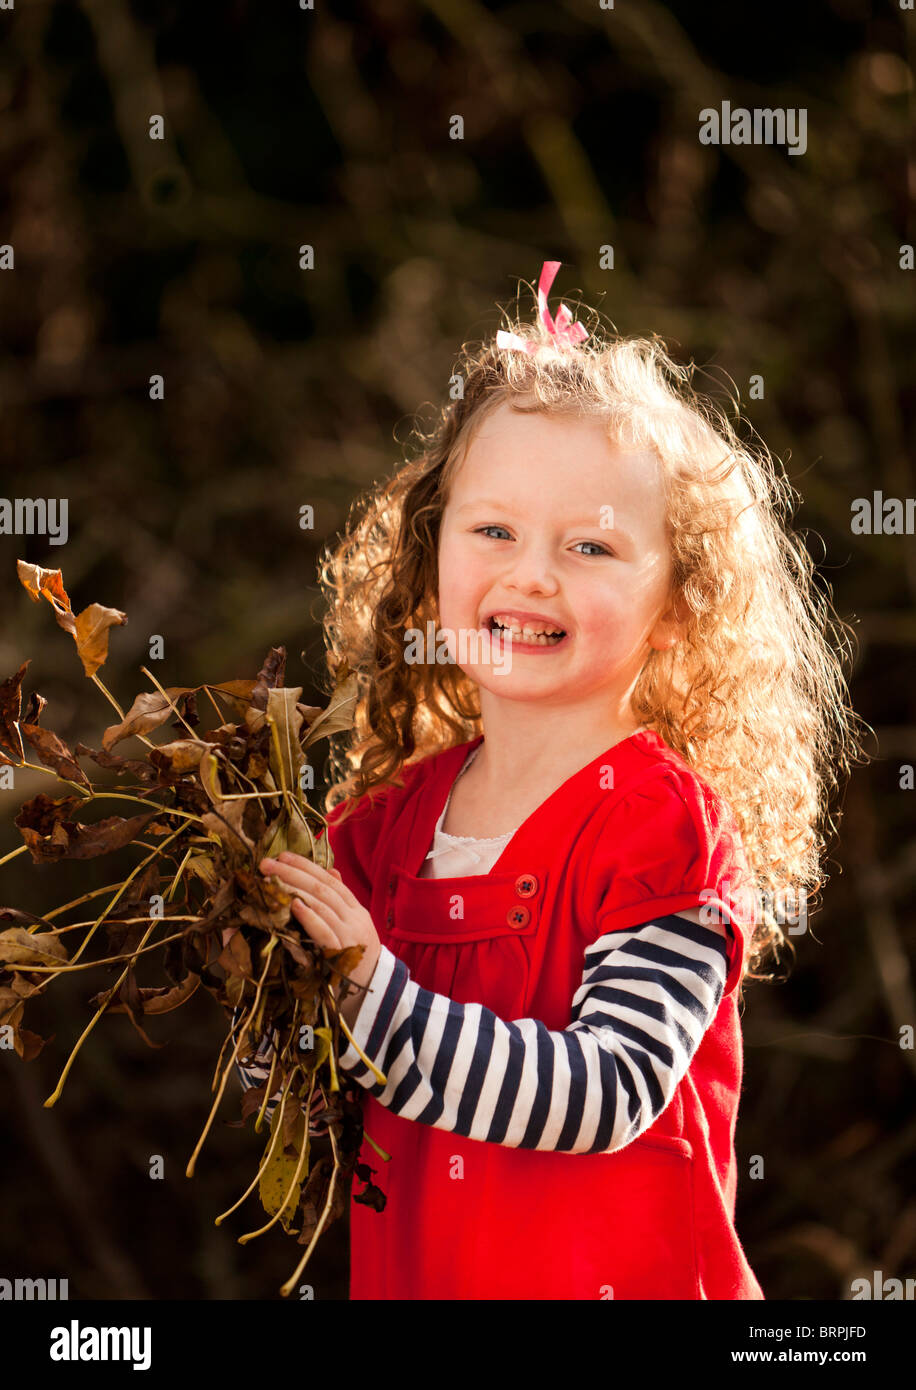 young girl playing with leaves in the autumn / fall season - Stock Image